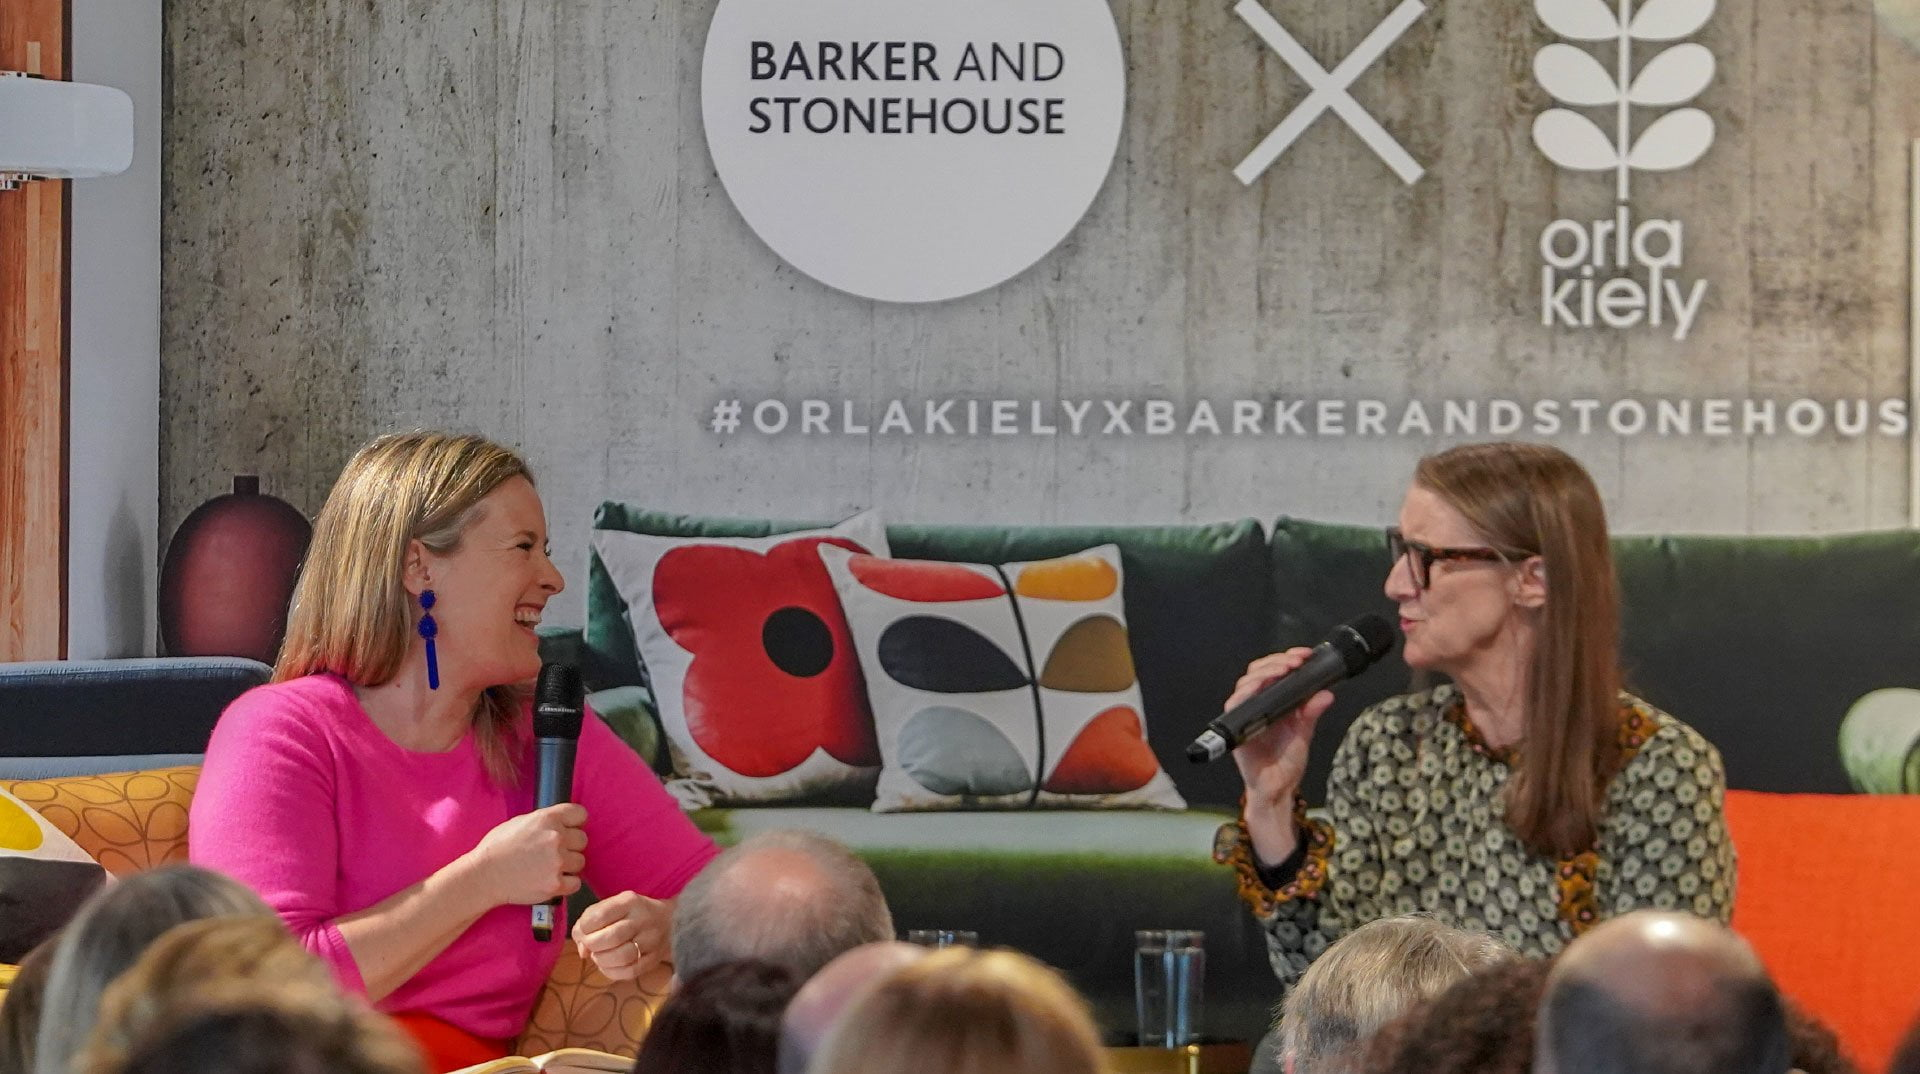 Orla Kiely for Barker and Stonehouse video